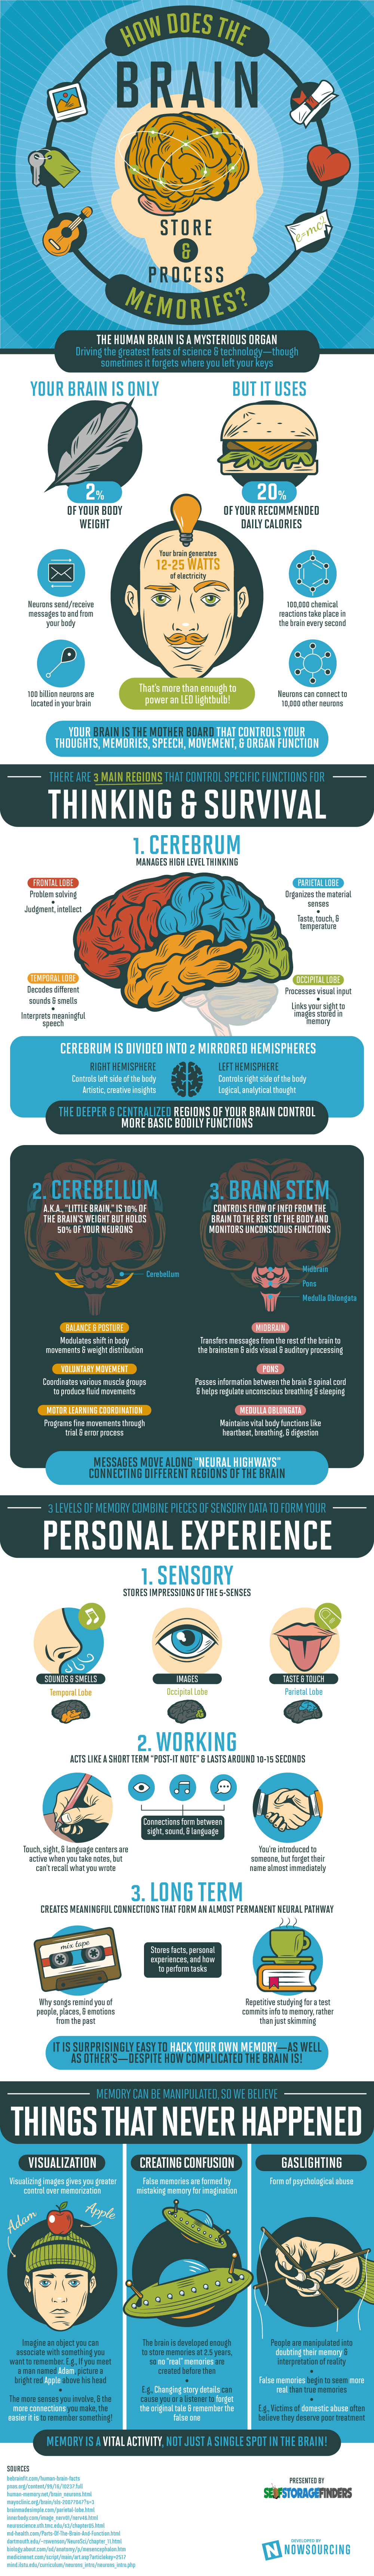 Know Your Brain Better - Infographic